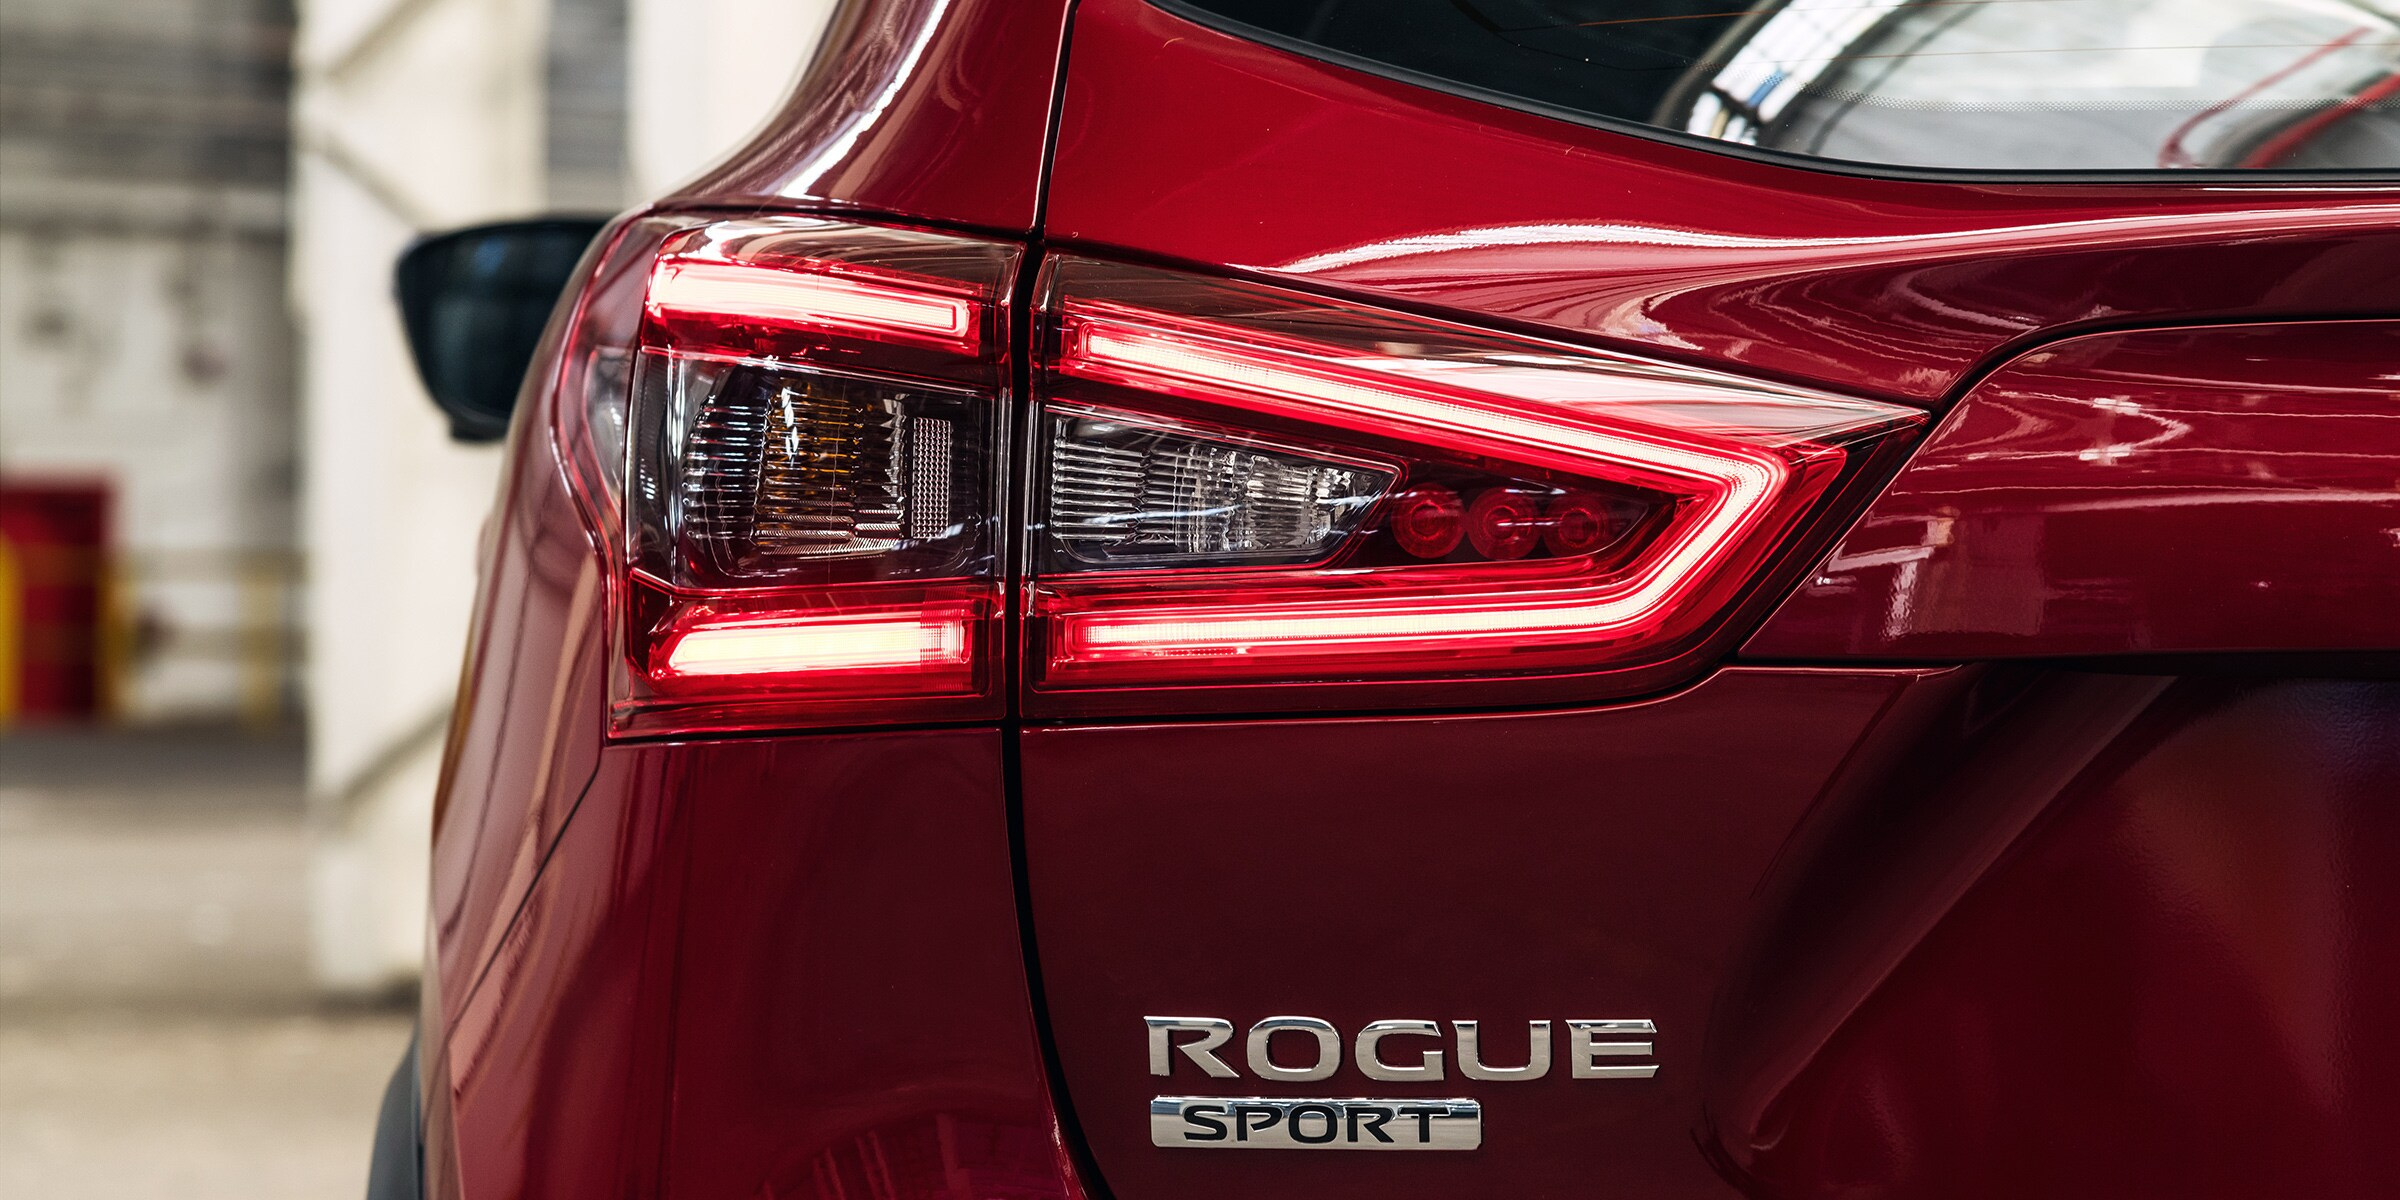 2020 Nissan Roque Sport: Refresh, Standard Safety Equipment, Release >> 2020 Nissan Rogue Sport Coming Fall 2019 To Marlboro Nissan